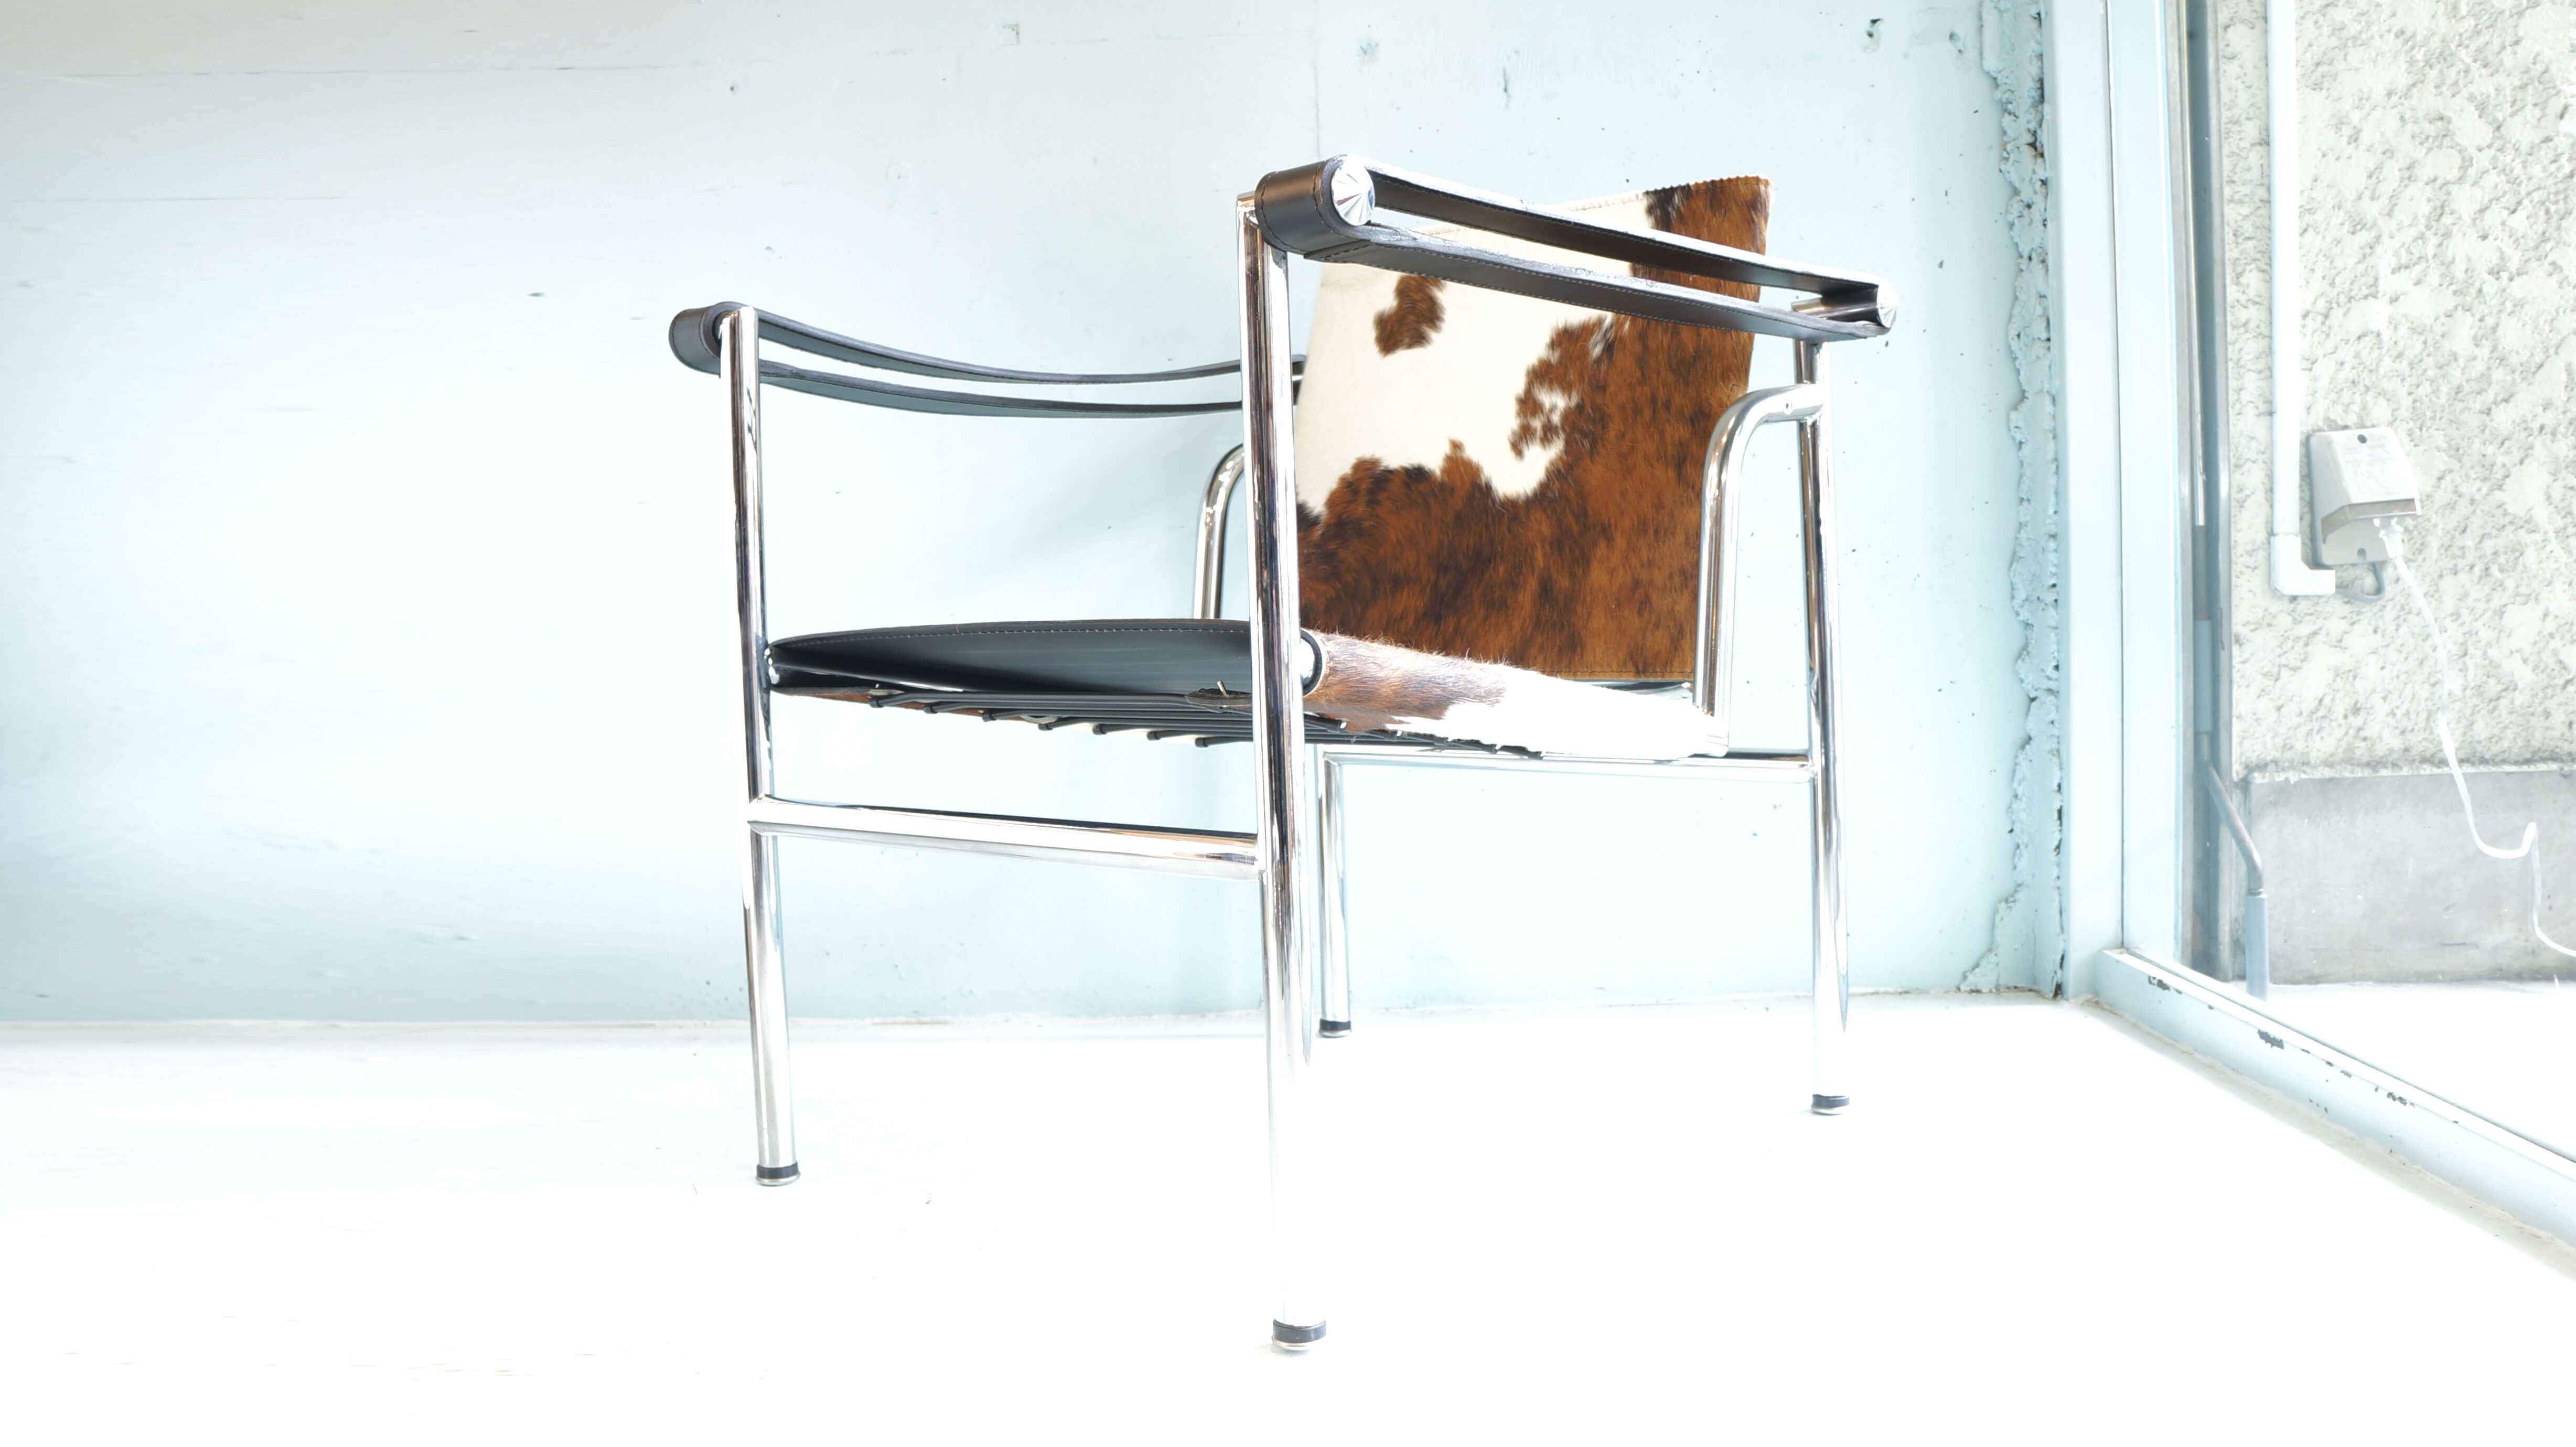 LC1 Sling chair design by Le Corbusier / スリングチェア バスキュランチェア ル・コルビュジエ